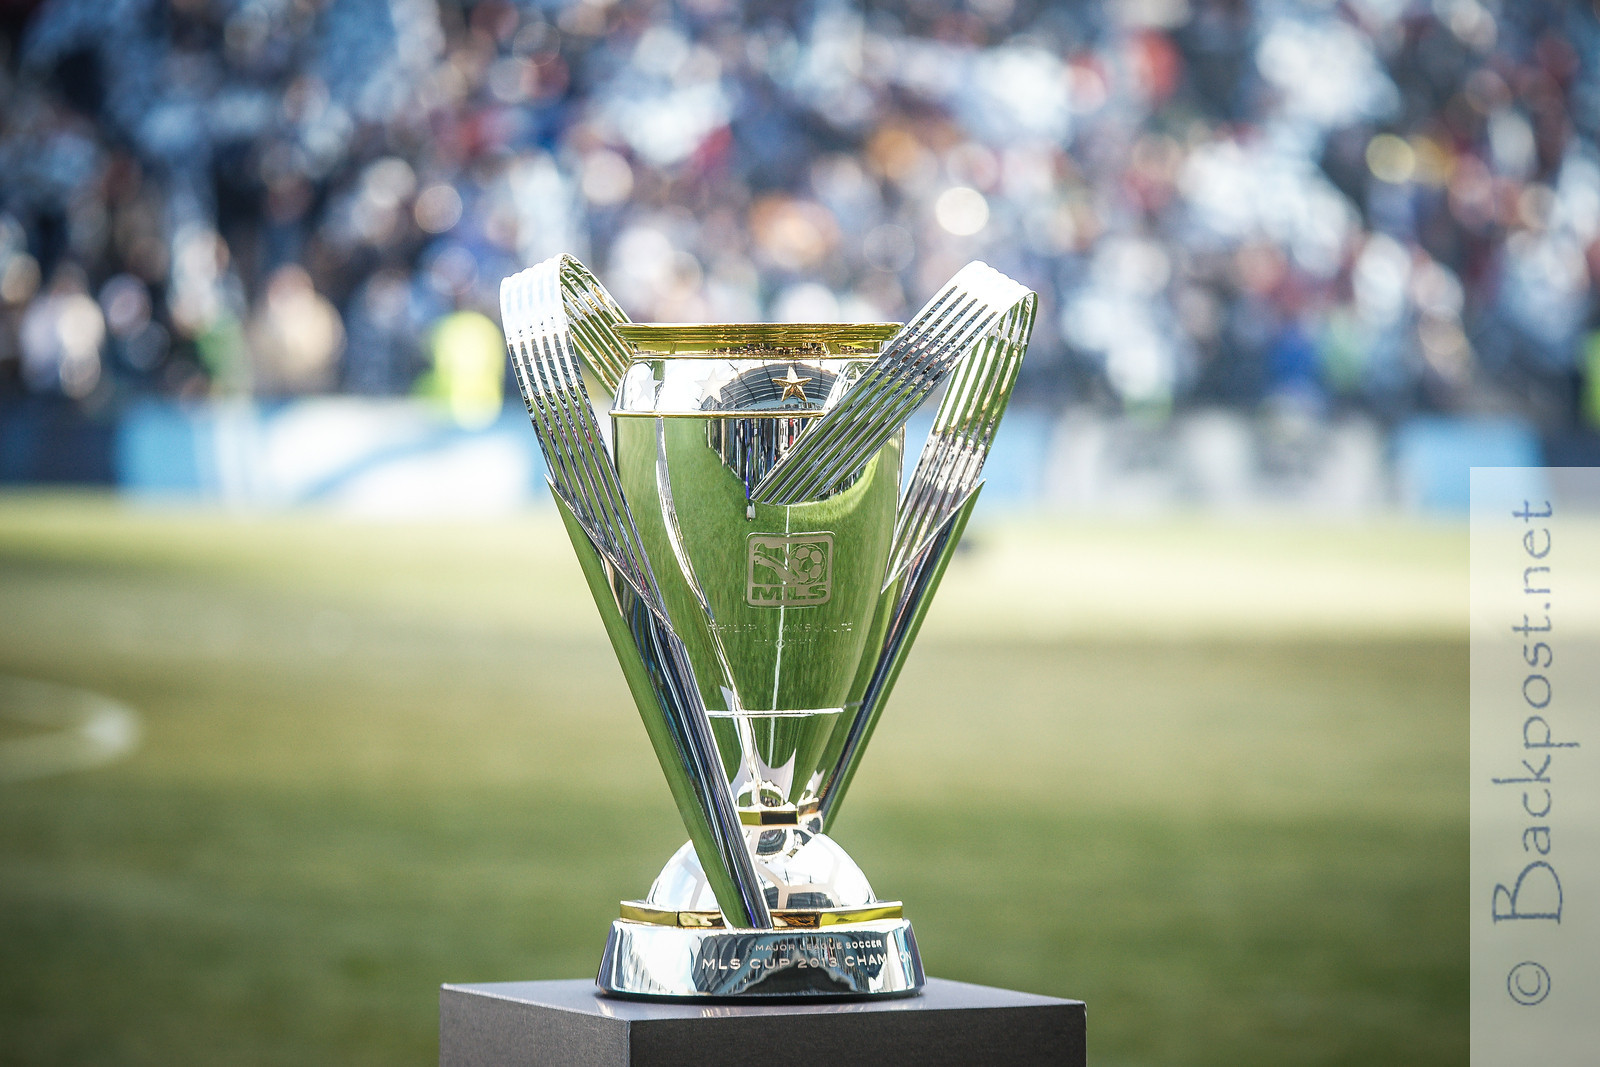 The hunt for the MLS Cup begins again